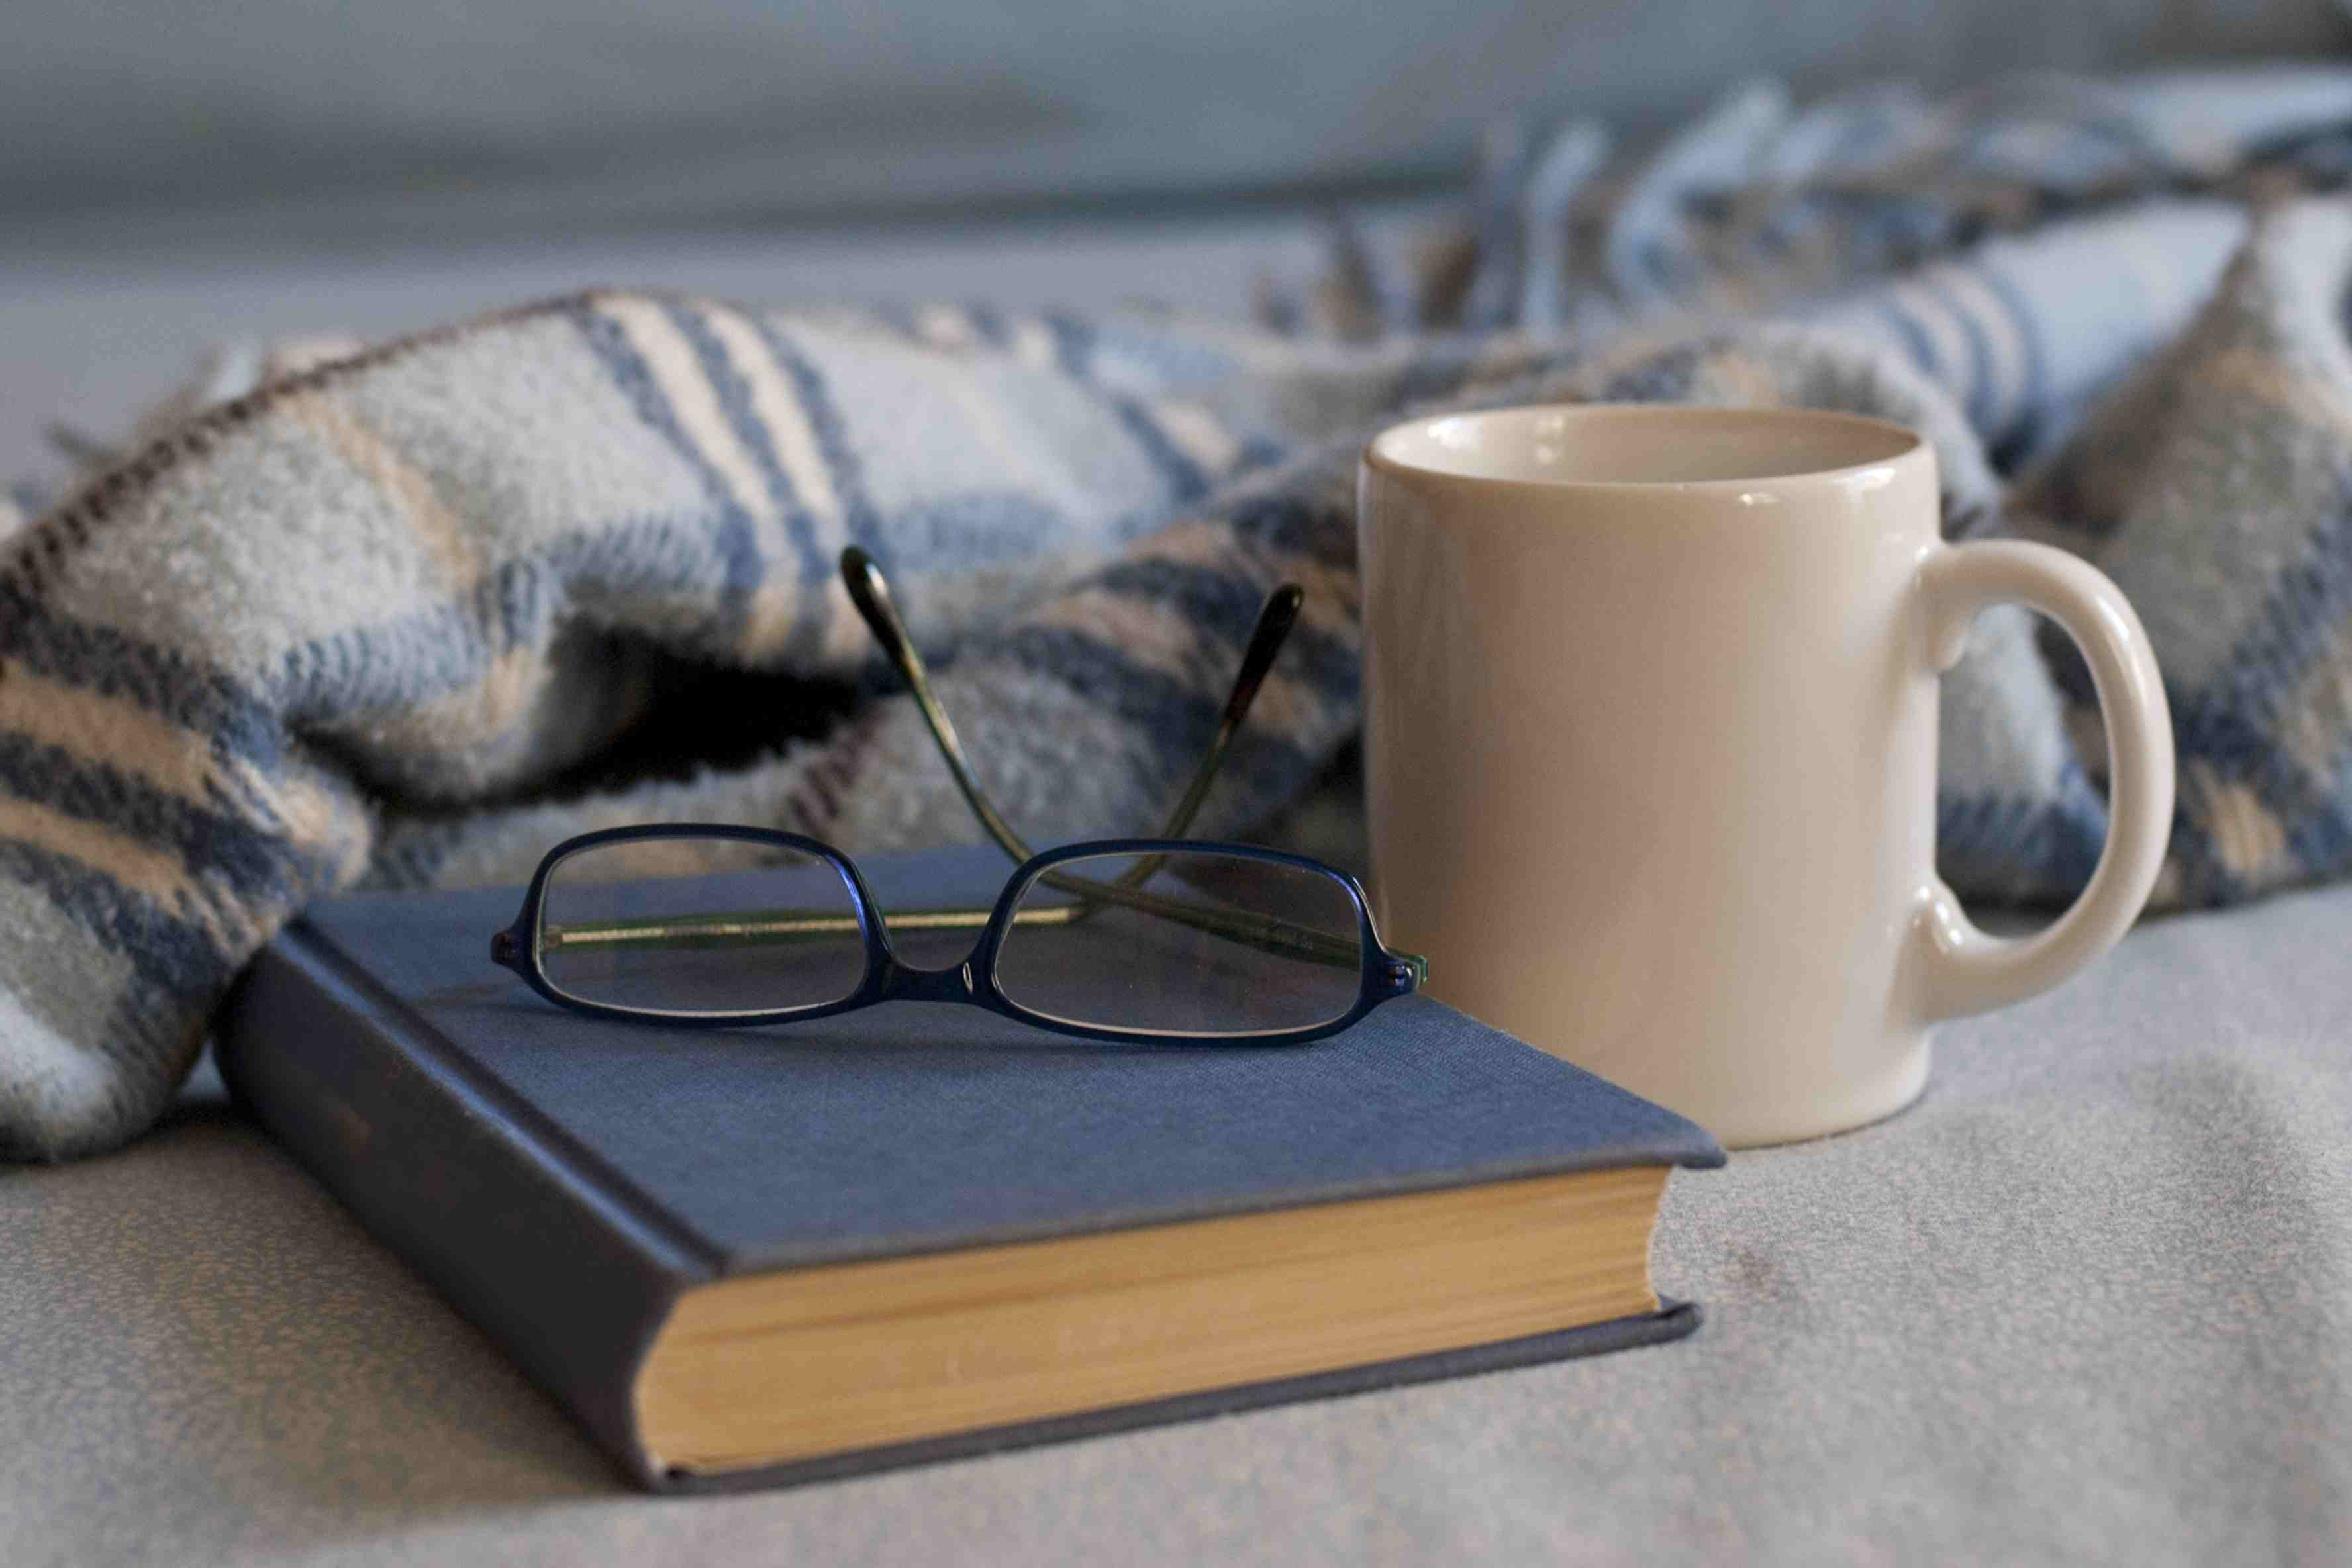 reading glasses on a book with a coffee mug and blanket